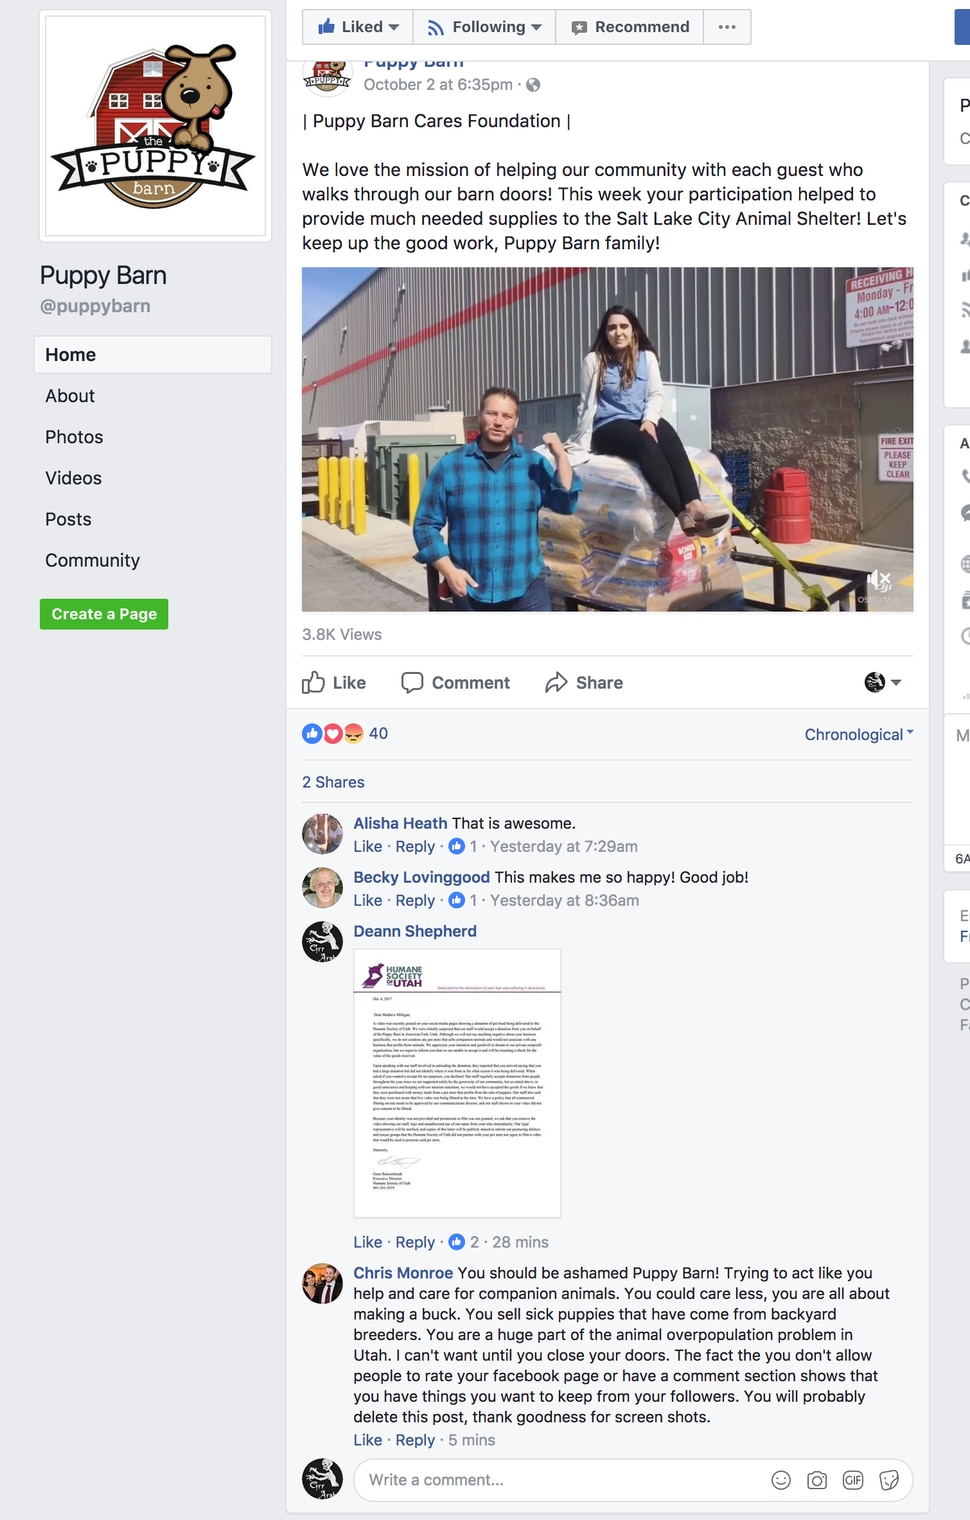 (Photo courtesy The Humane Society of Utah) A video showing the owner of Puppy Barn donating dog food to the Humane Society of Utah has been removed after the nonprofit didn't accept the donation.